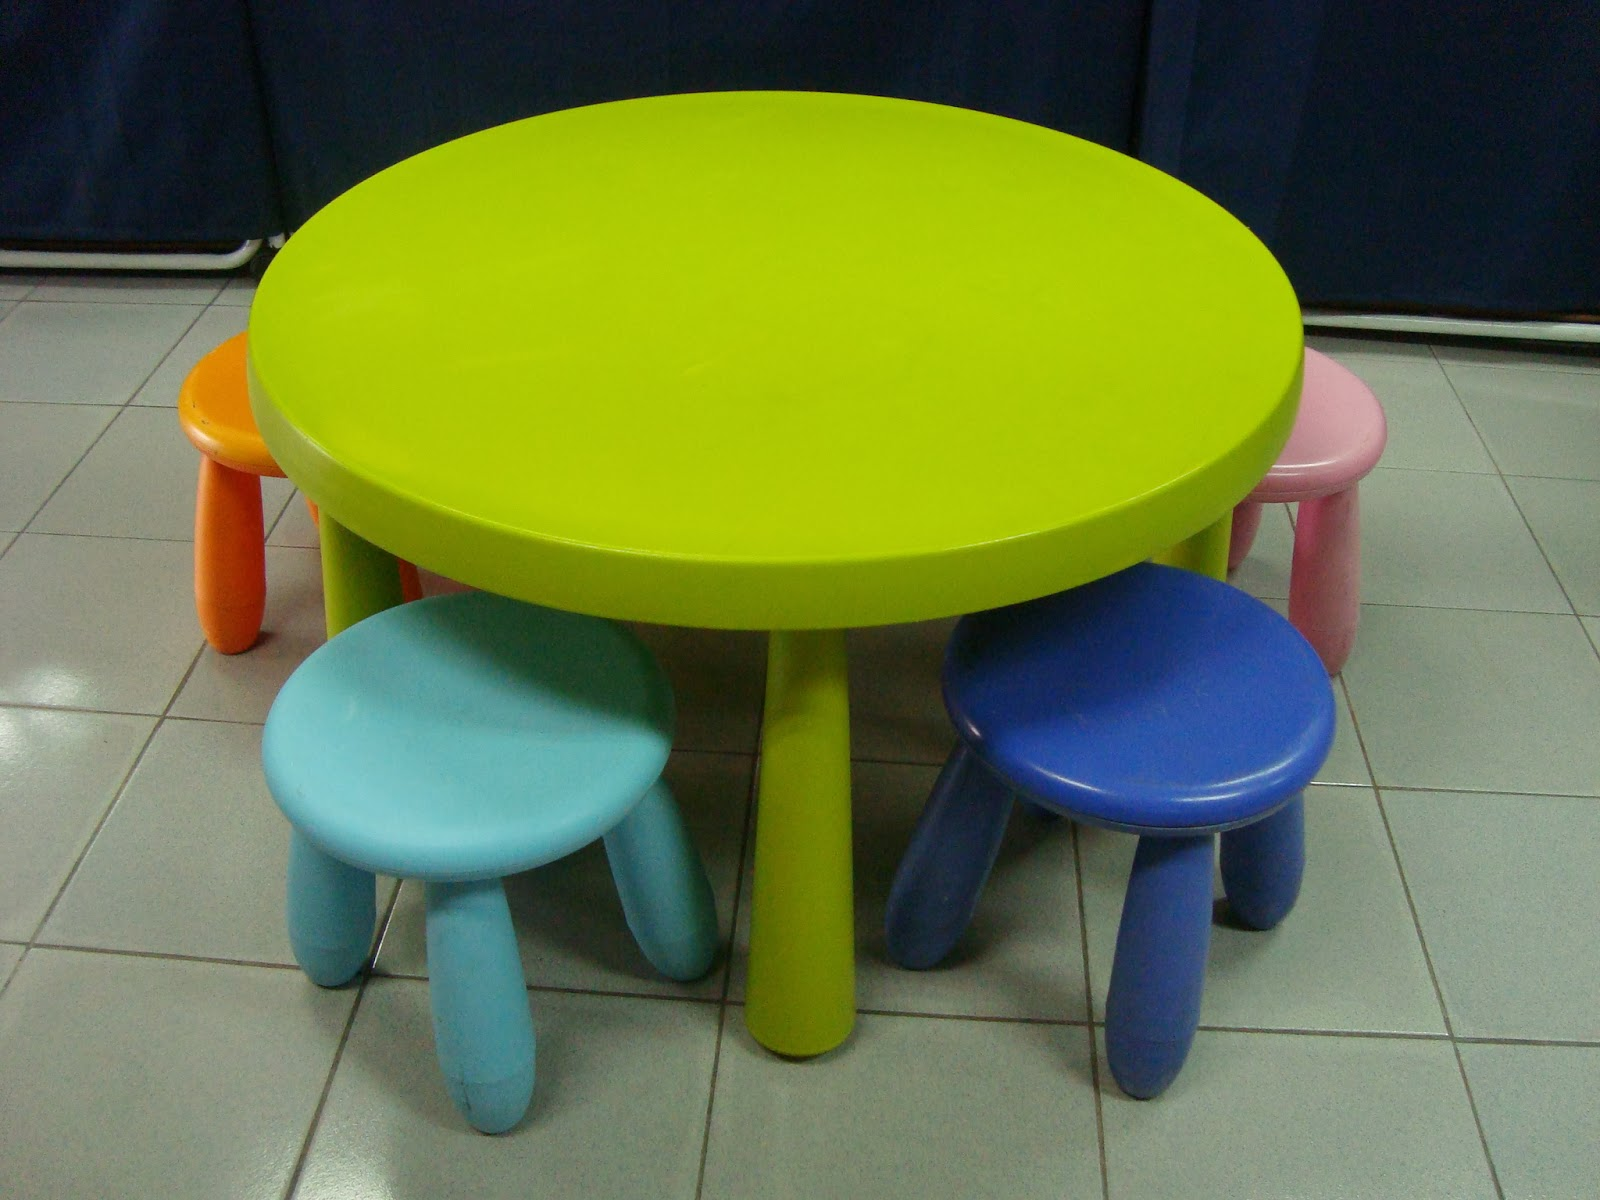 Ikea Childrens Plastic Table And Chairs Luxury Office Kedai Bundle Toys Thetottoys Mammut Round With